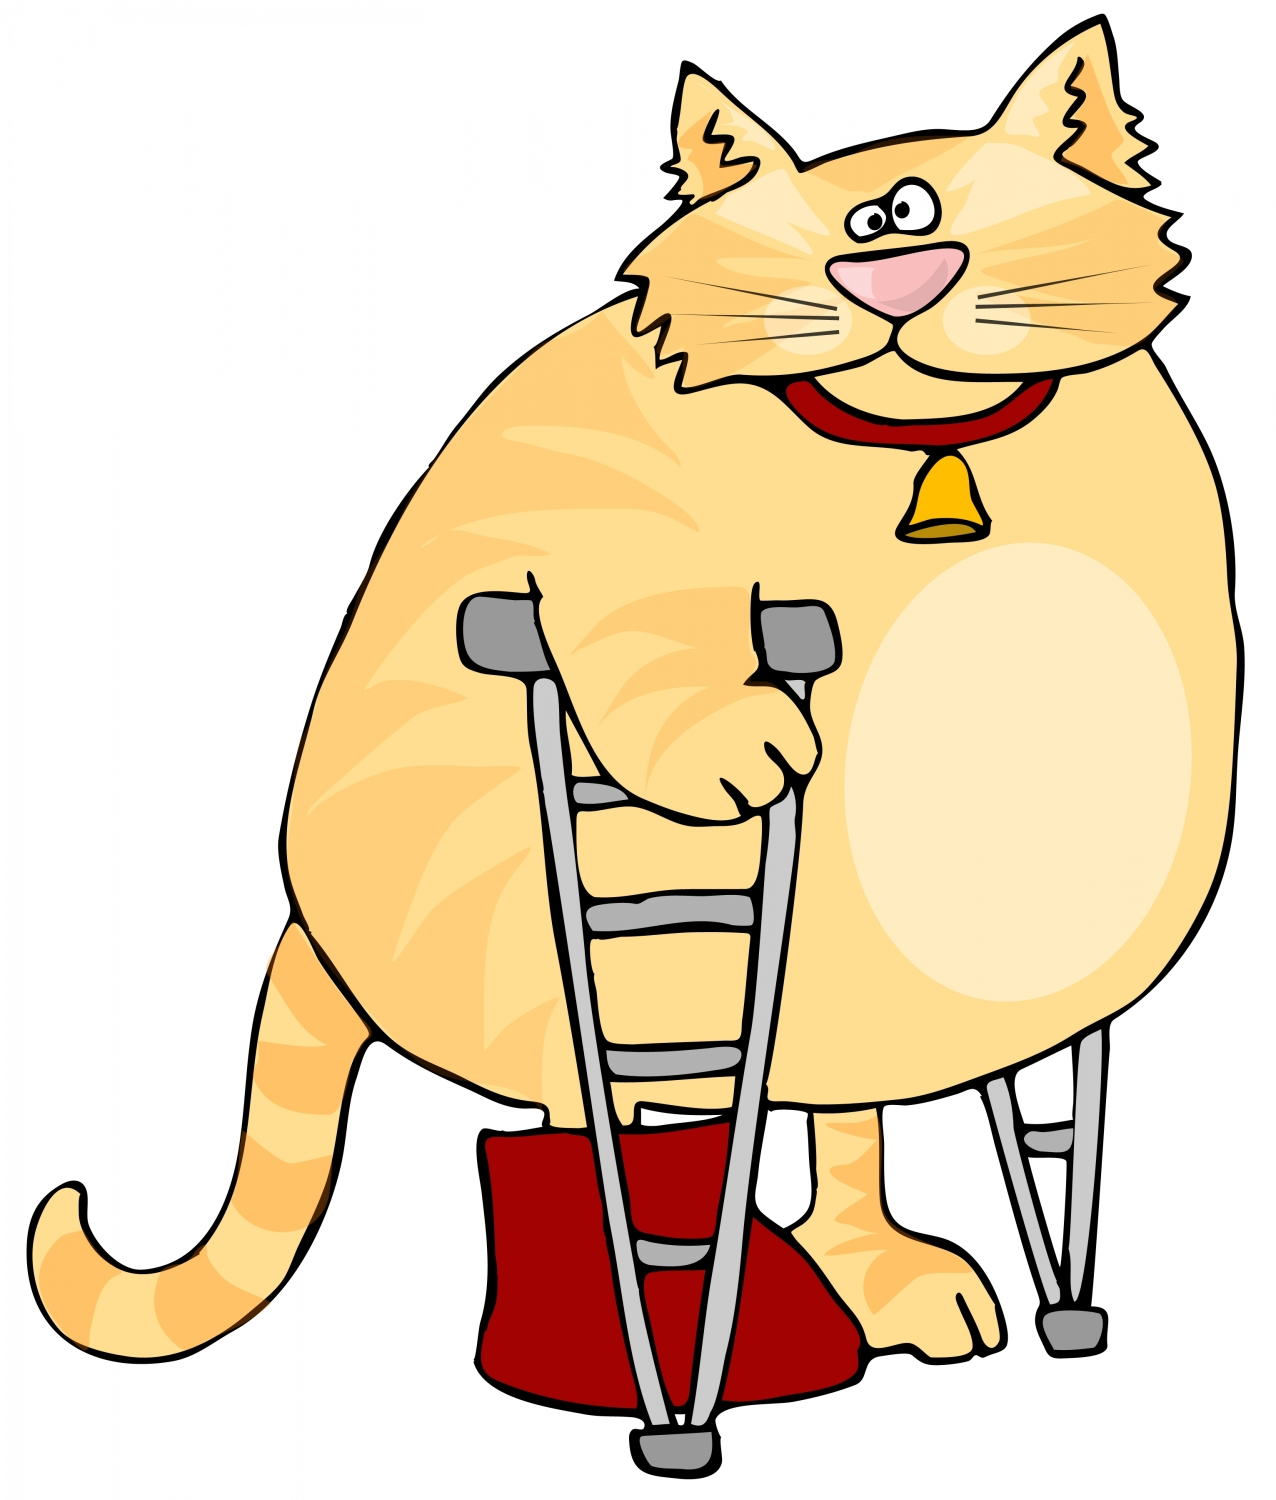 Hurt clipart foot pain. Her right started to